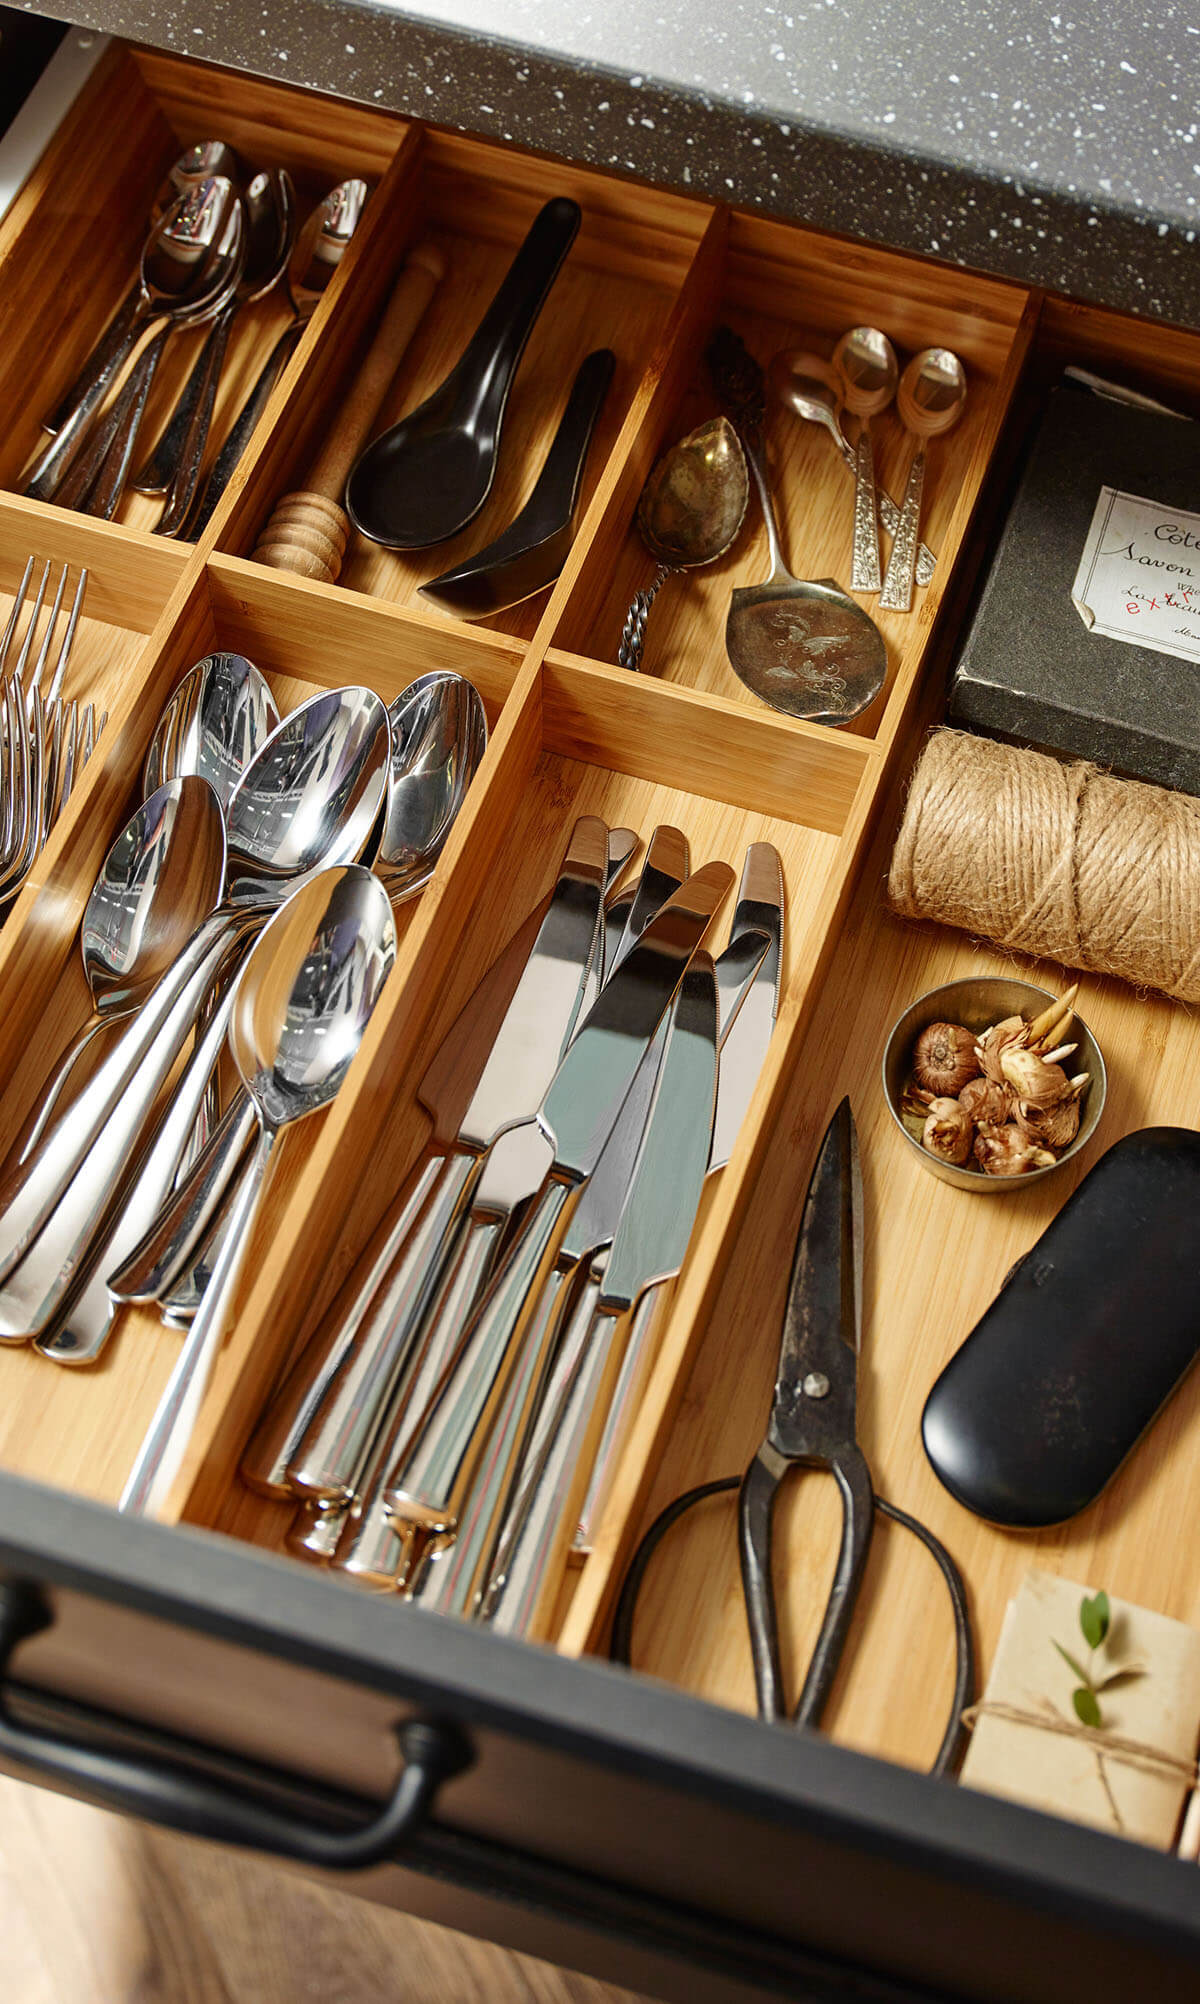 Wooden Dividers to Organize Your Utensil Drawers